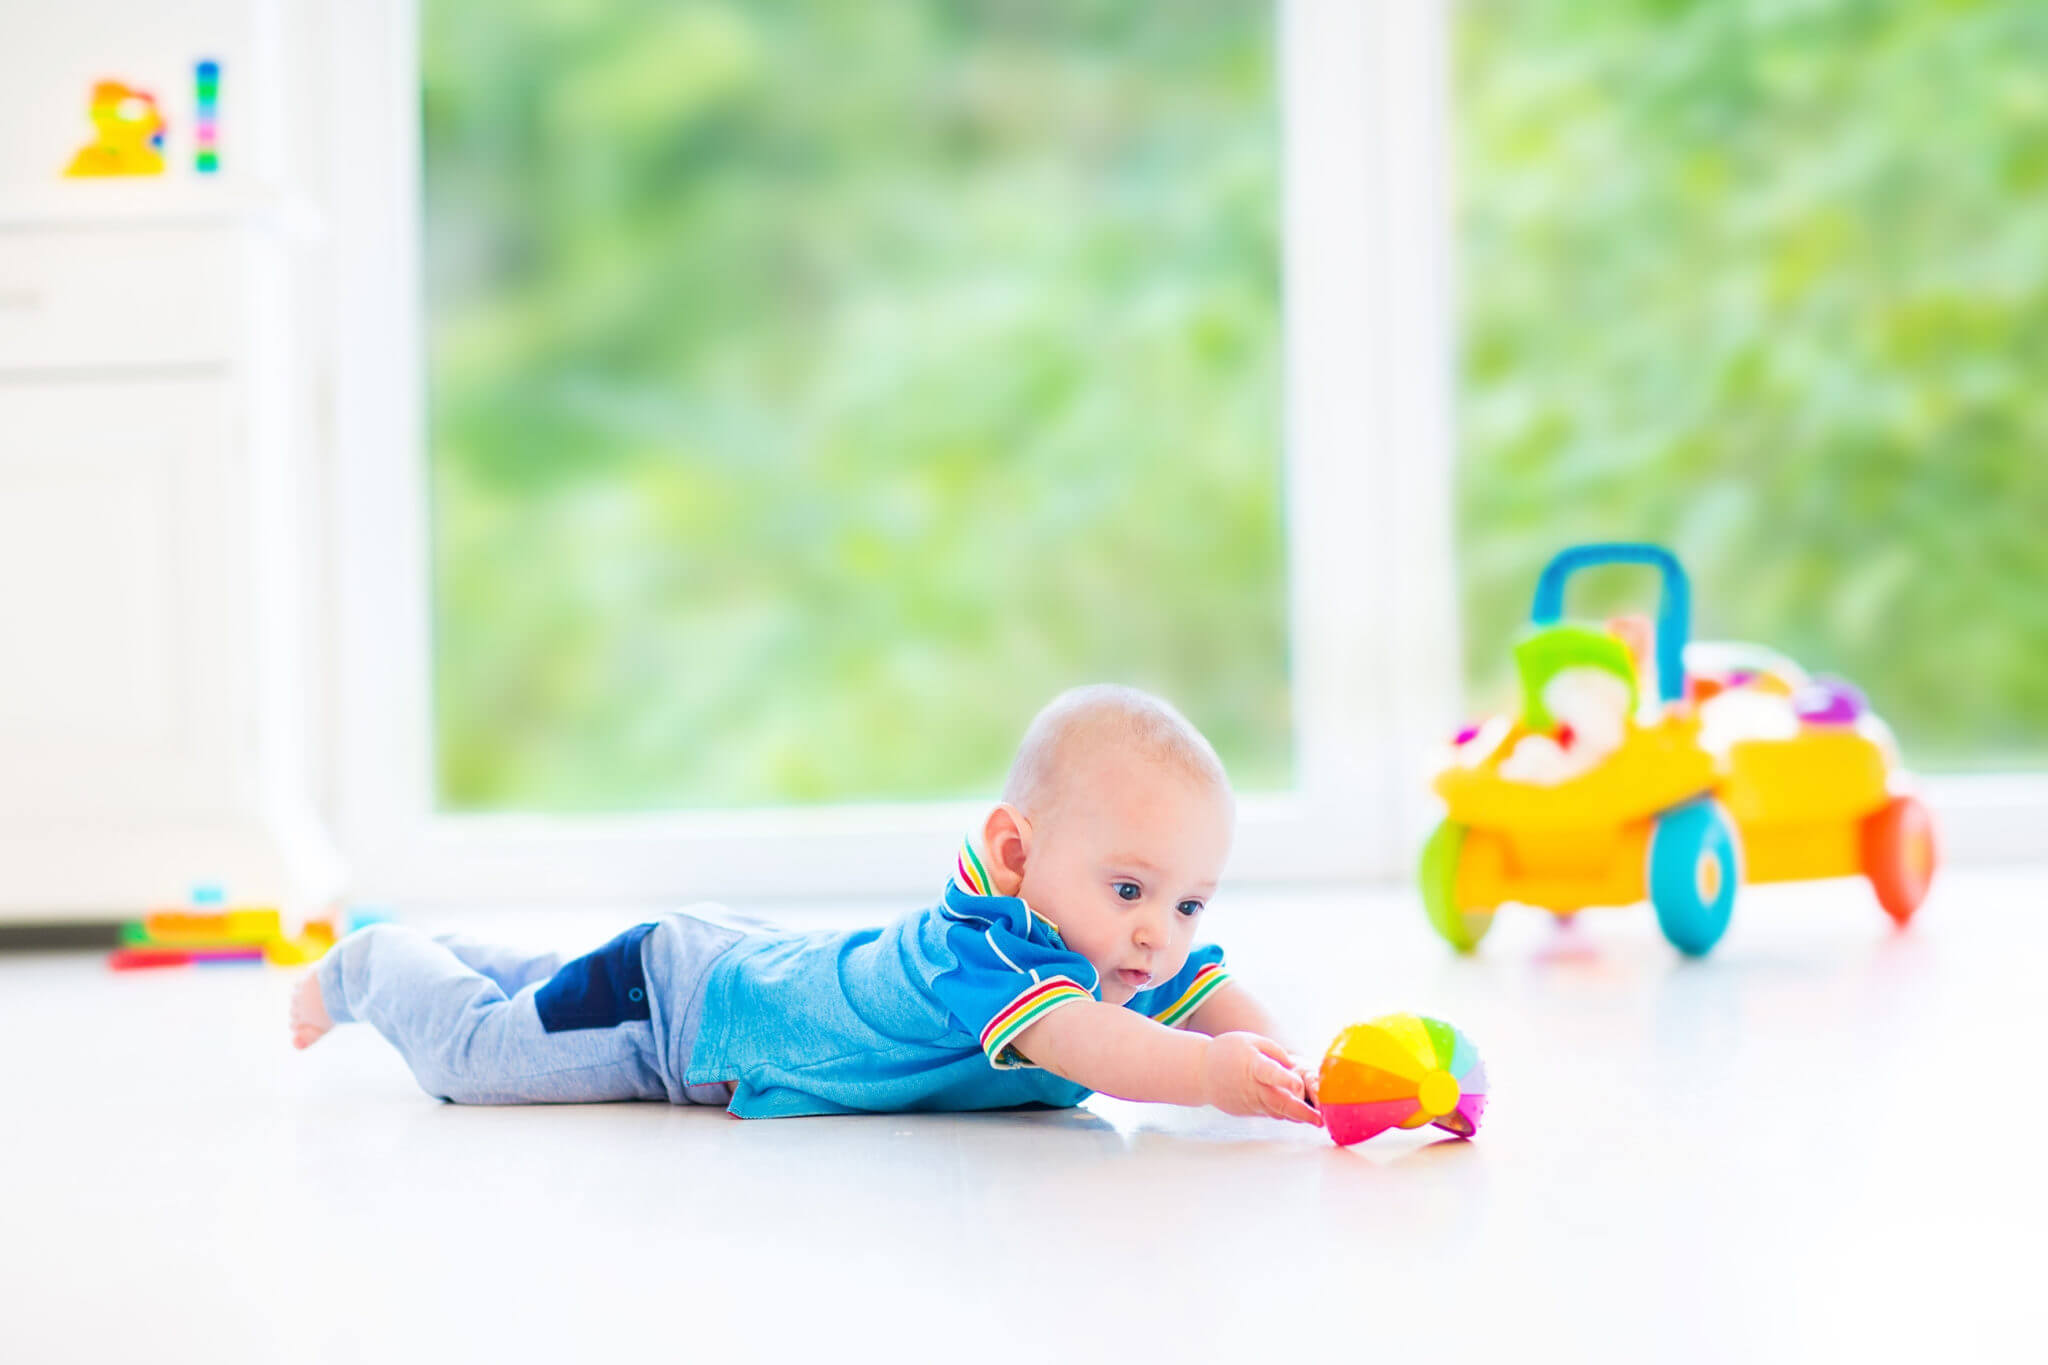 A baby boy lies on his stomach on the floor and plays with a toy